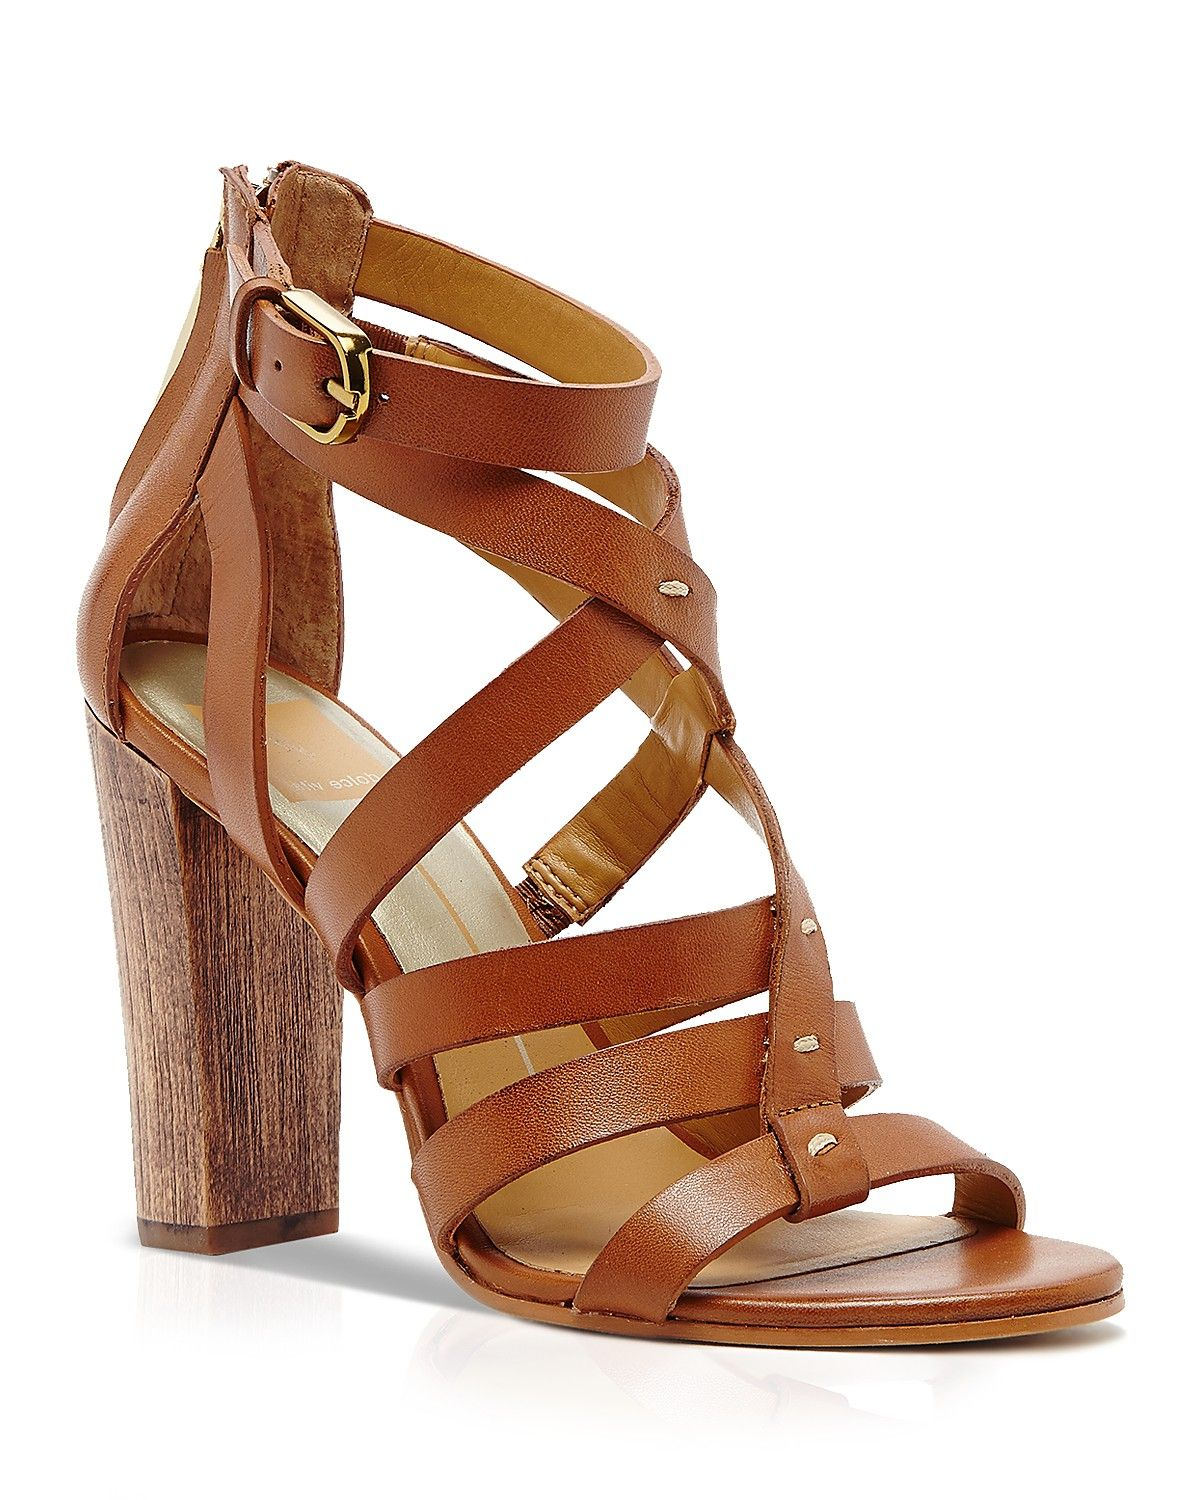 be06d235301 Dolce Vita Open Toe Sandals - Nolin High Heel